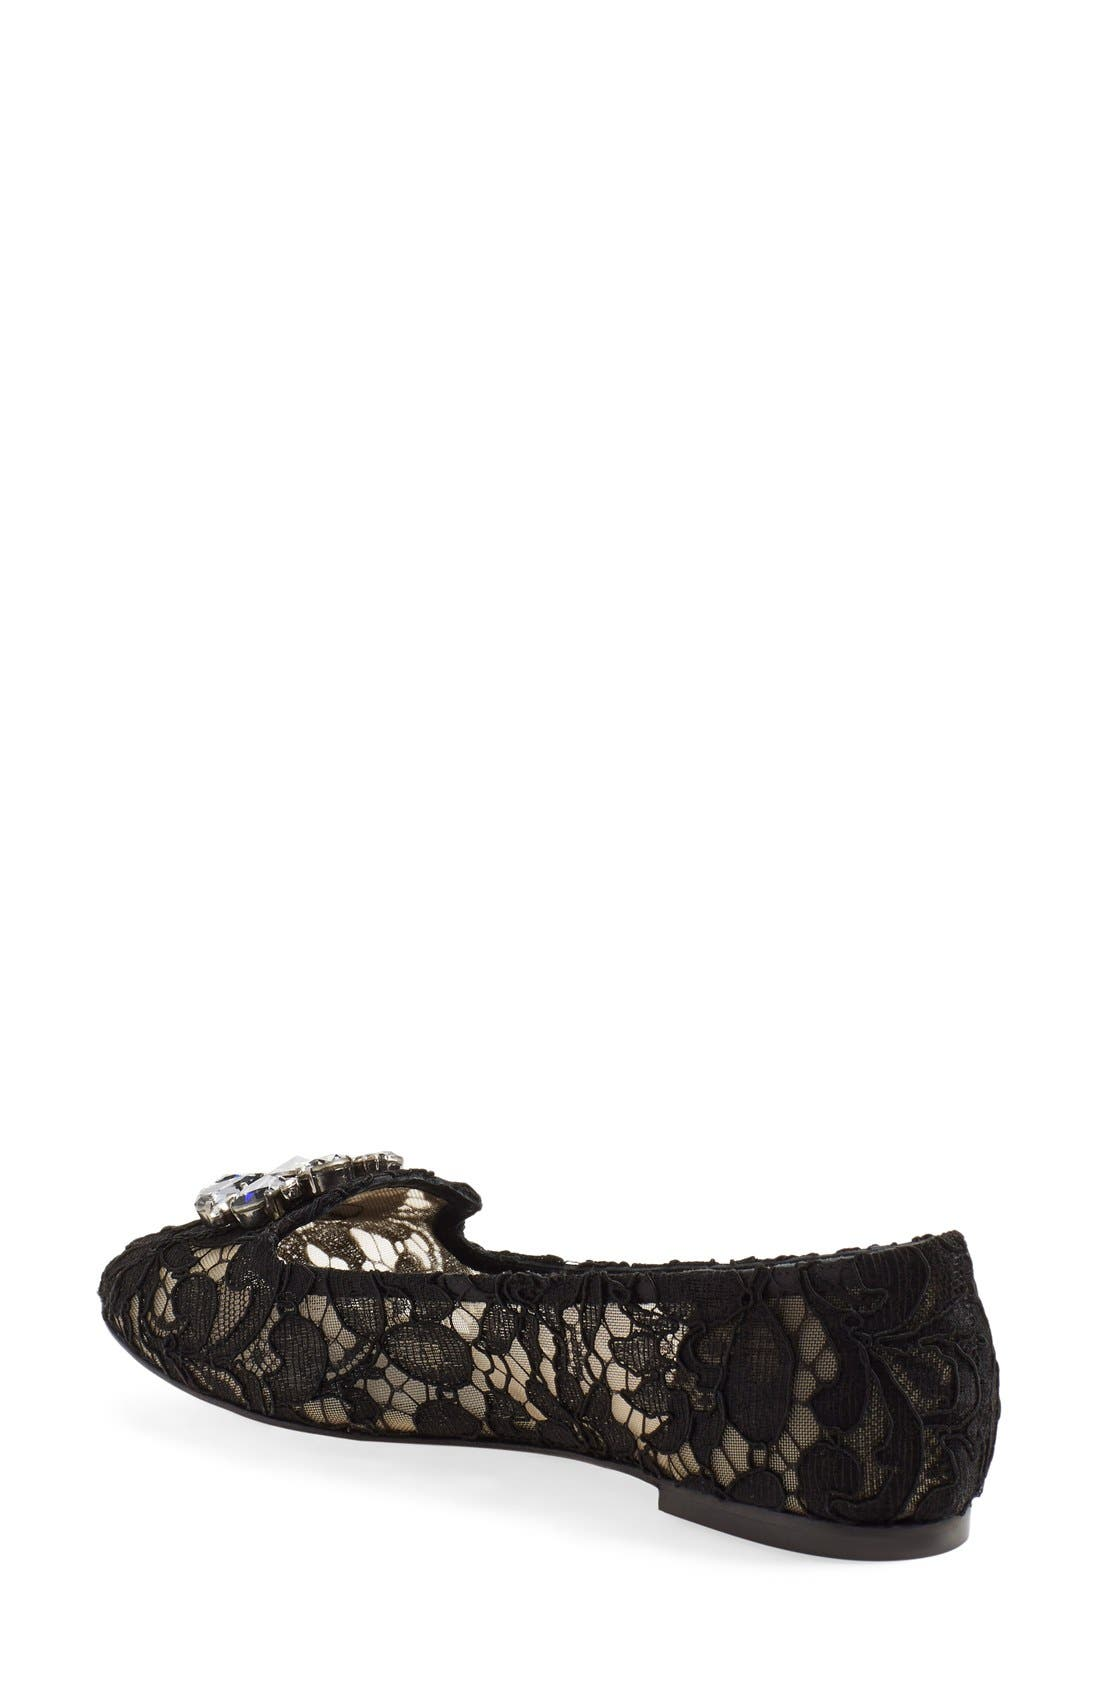 DOLCE&GABBANA, Crystal & Lace Pointy Toe Flat, Alternate thumbnail 4, color, 001